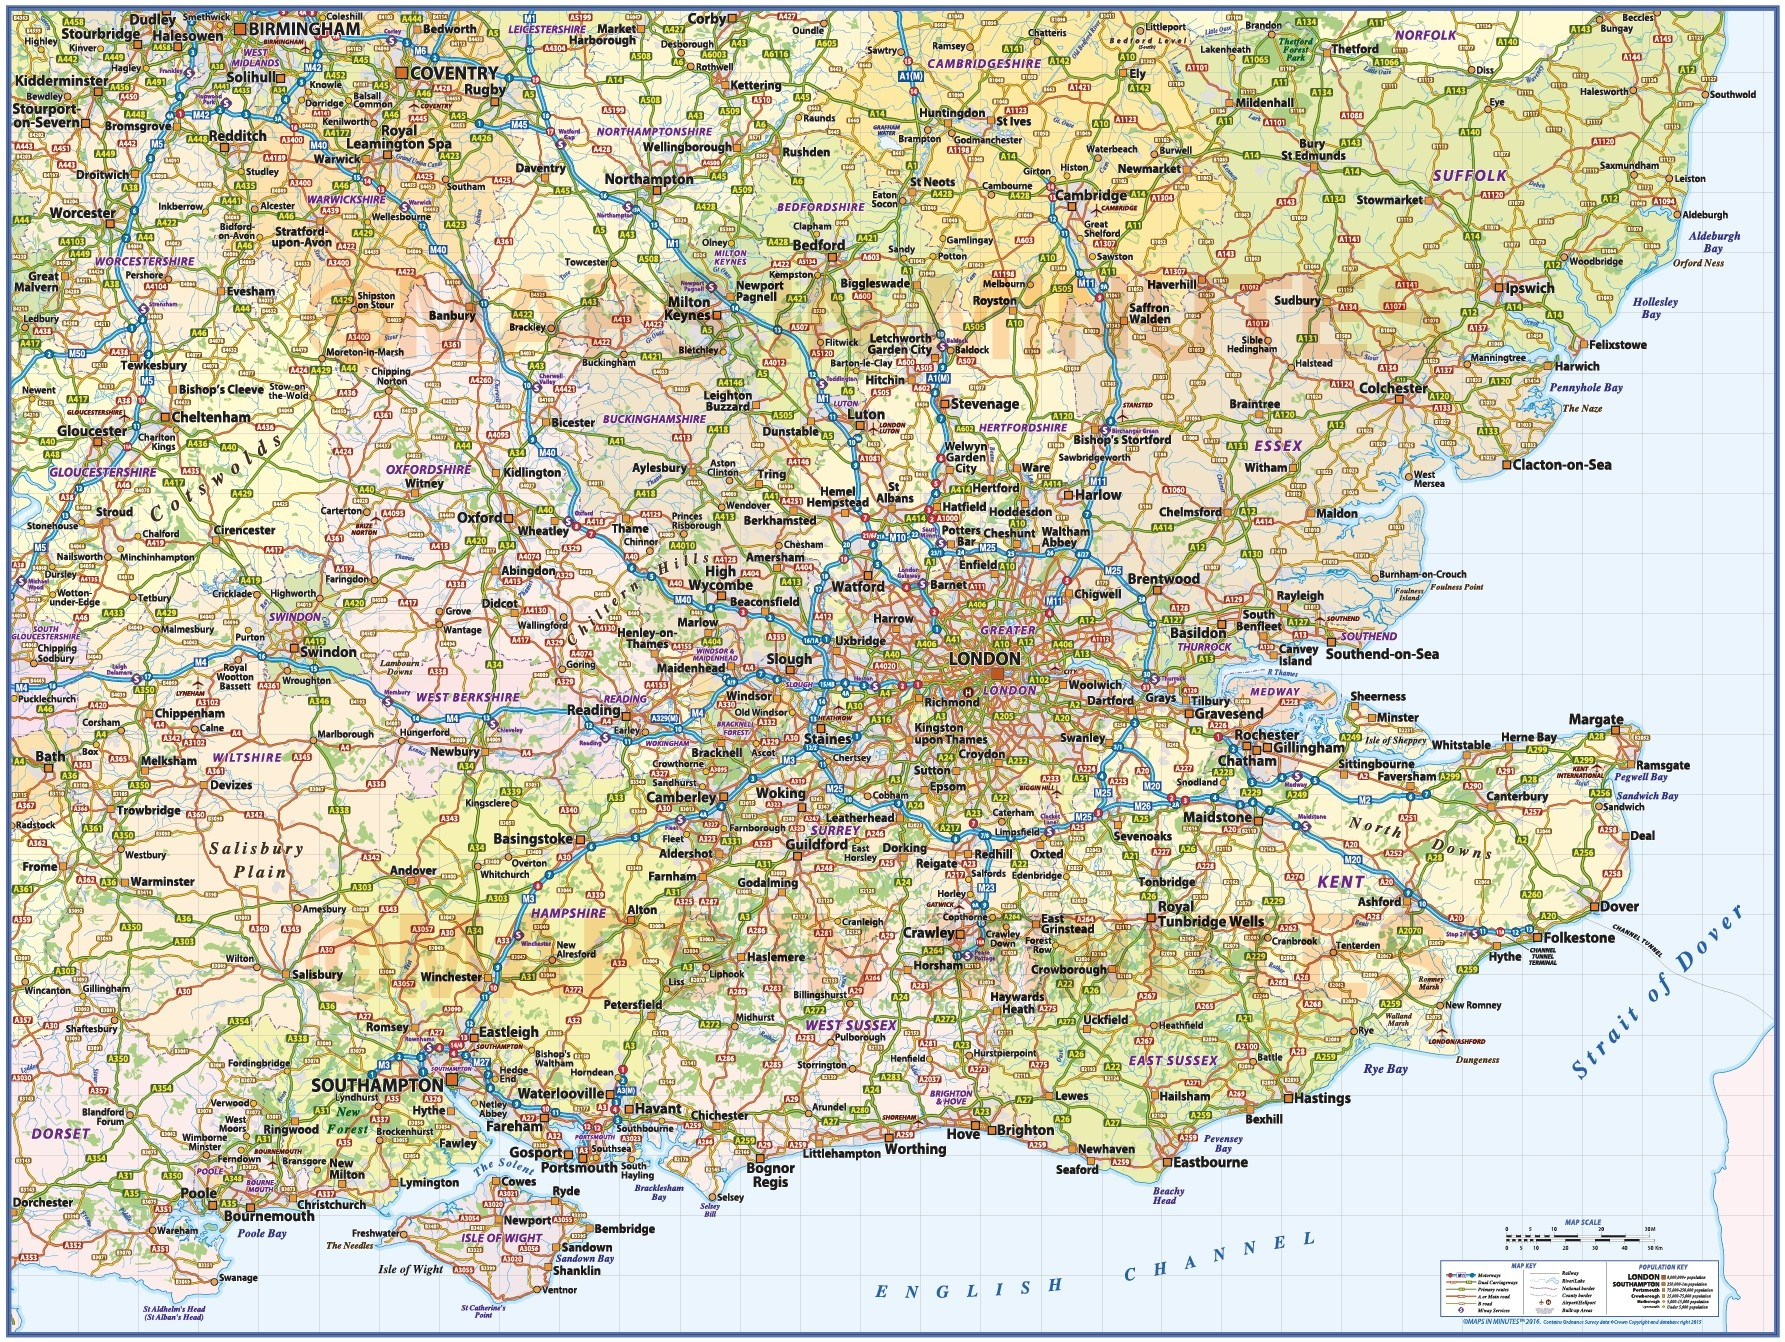 Map Of England South.South East England 1st Level County Wall Map With Roads And Rail